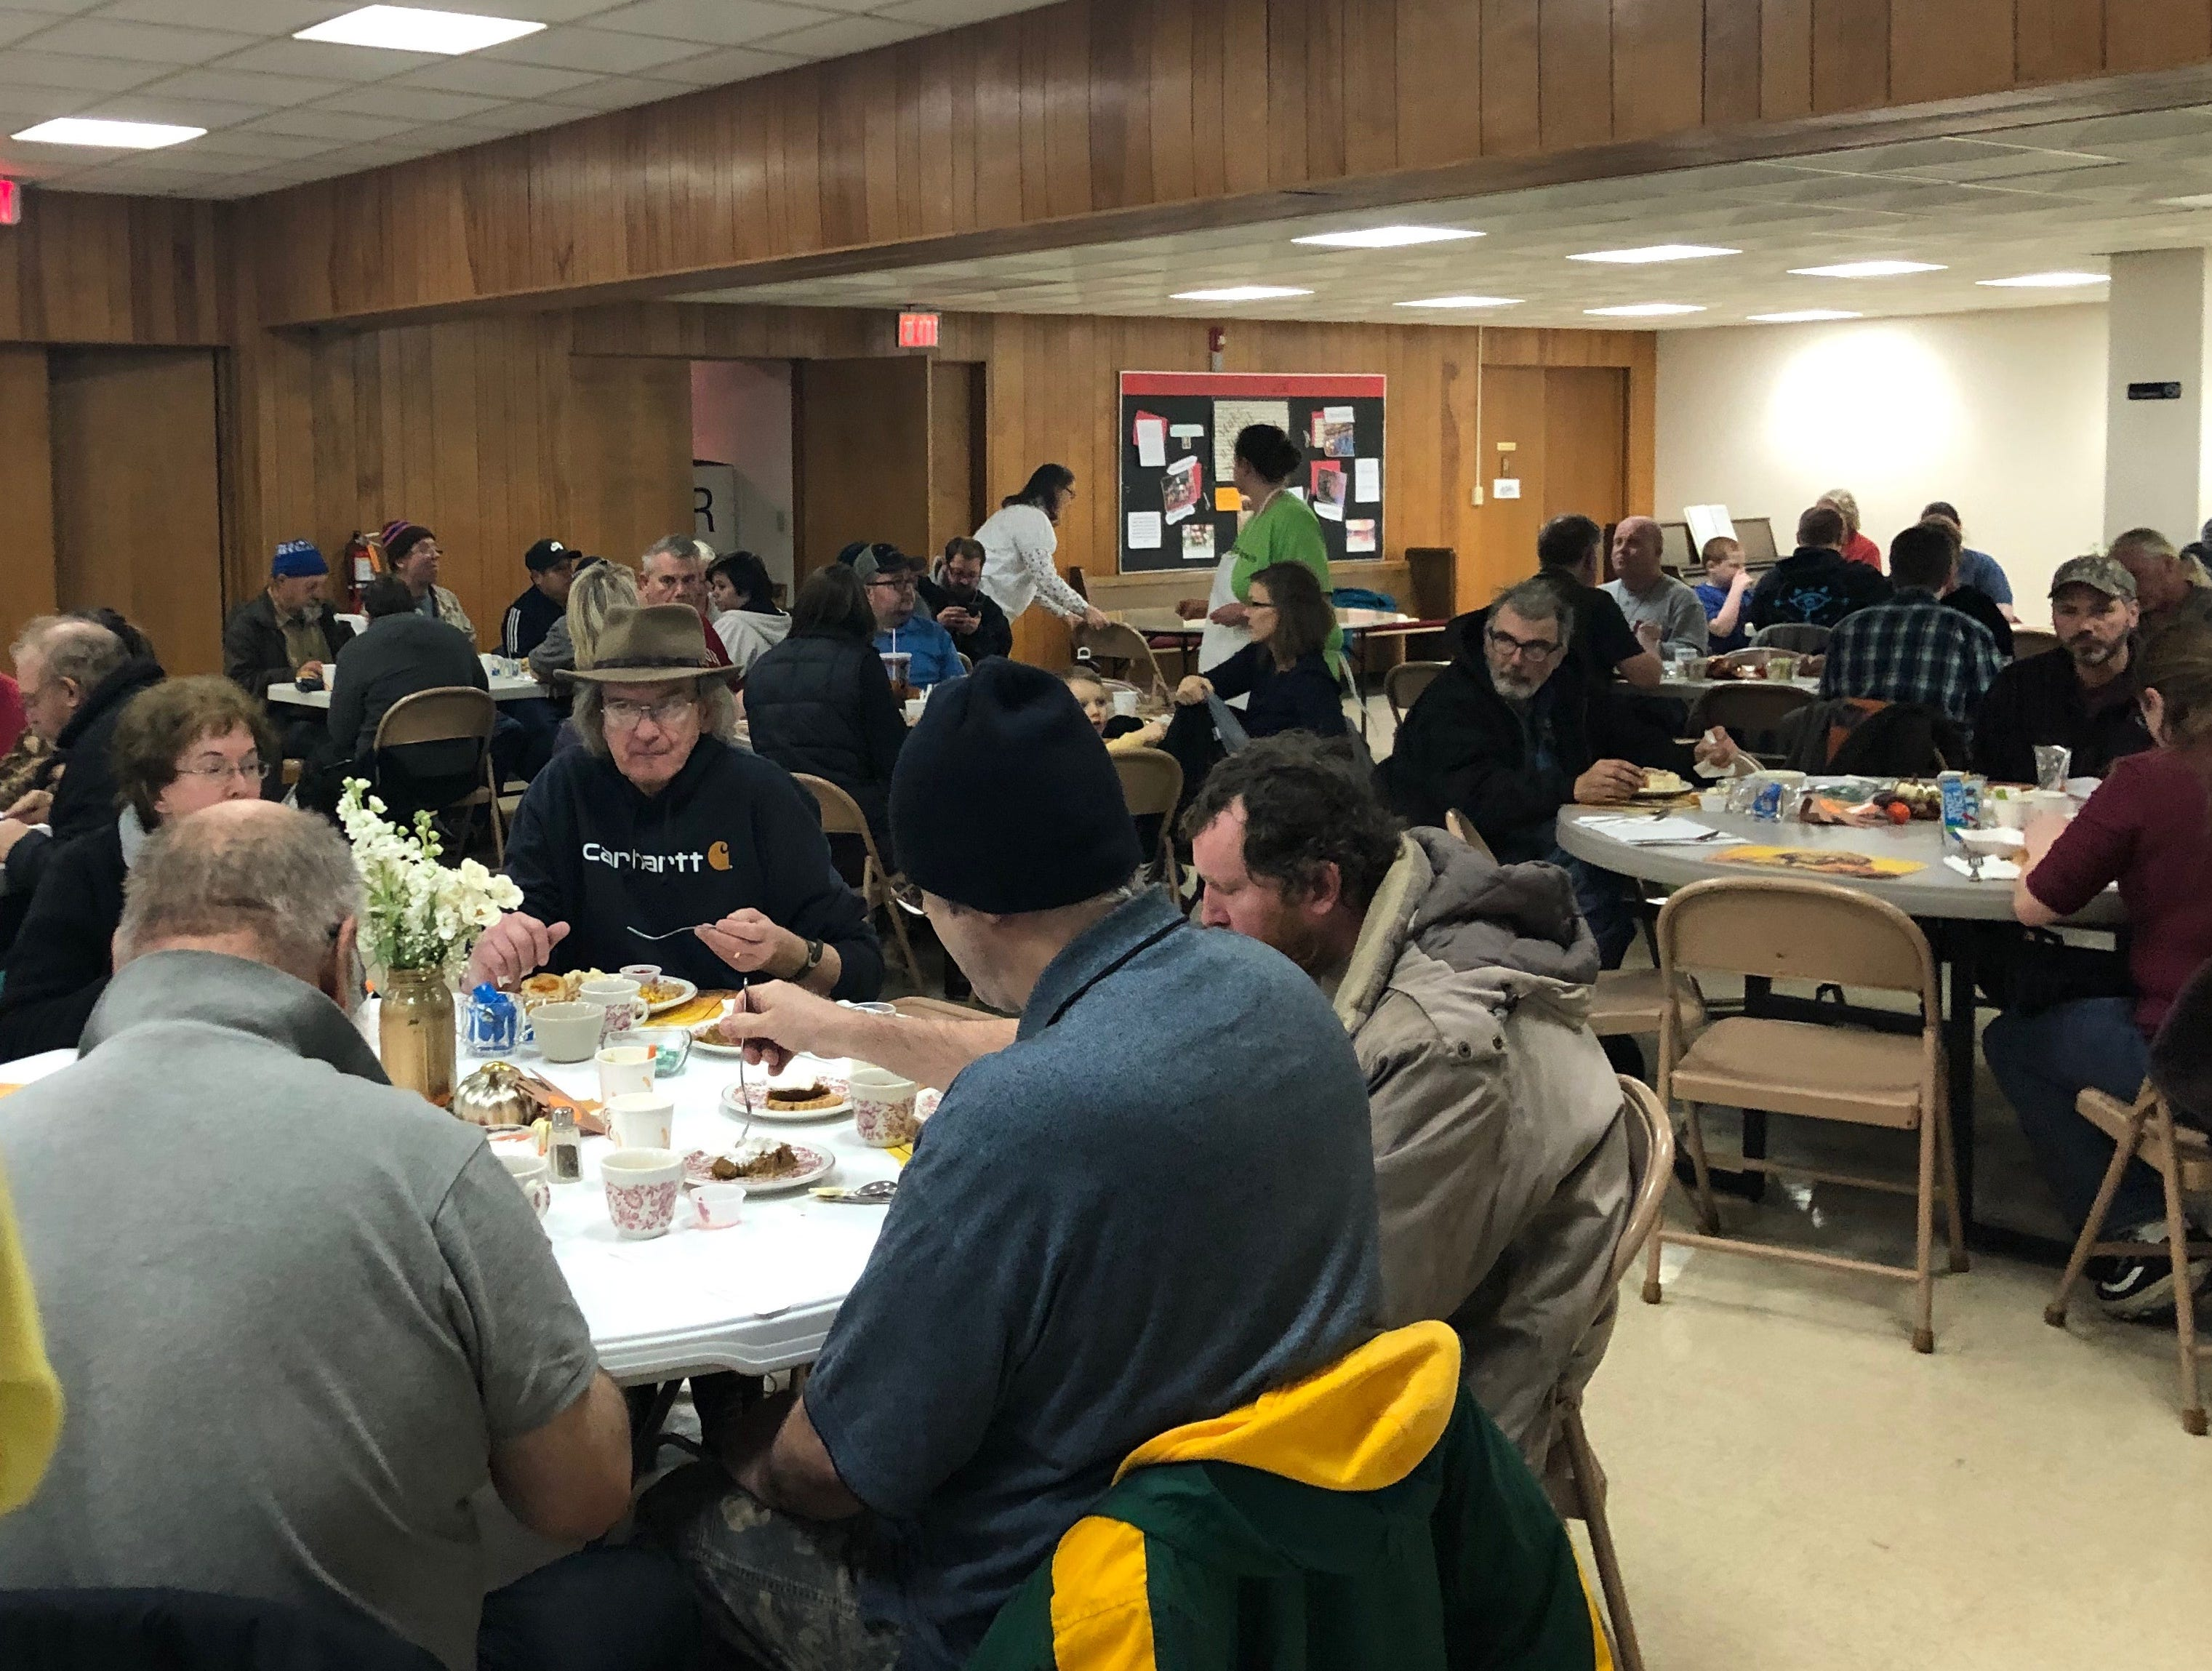 Community members dig into a Thanksgiving dinner at First Presbyterian Church on Nov. 22.